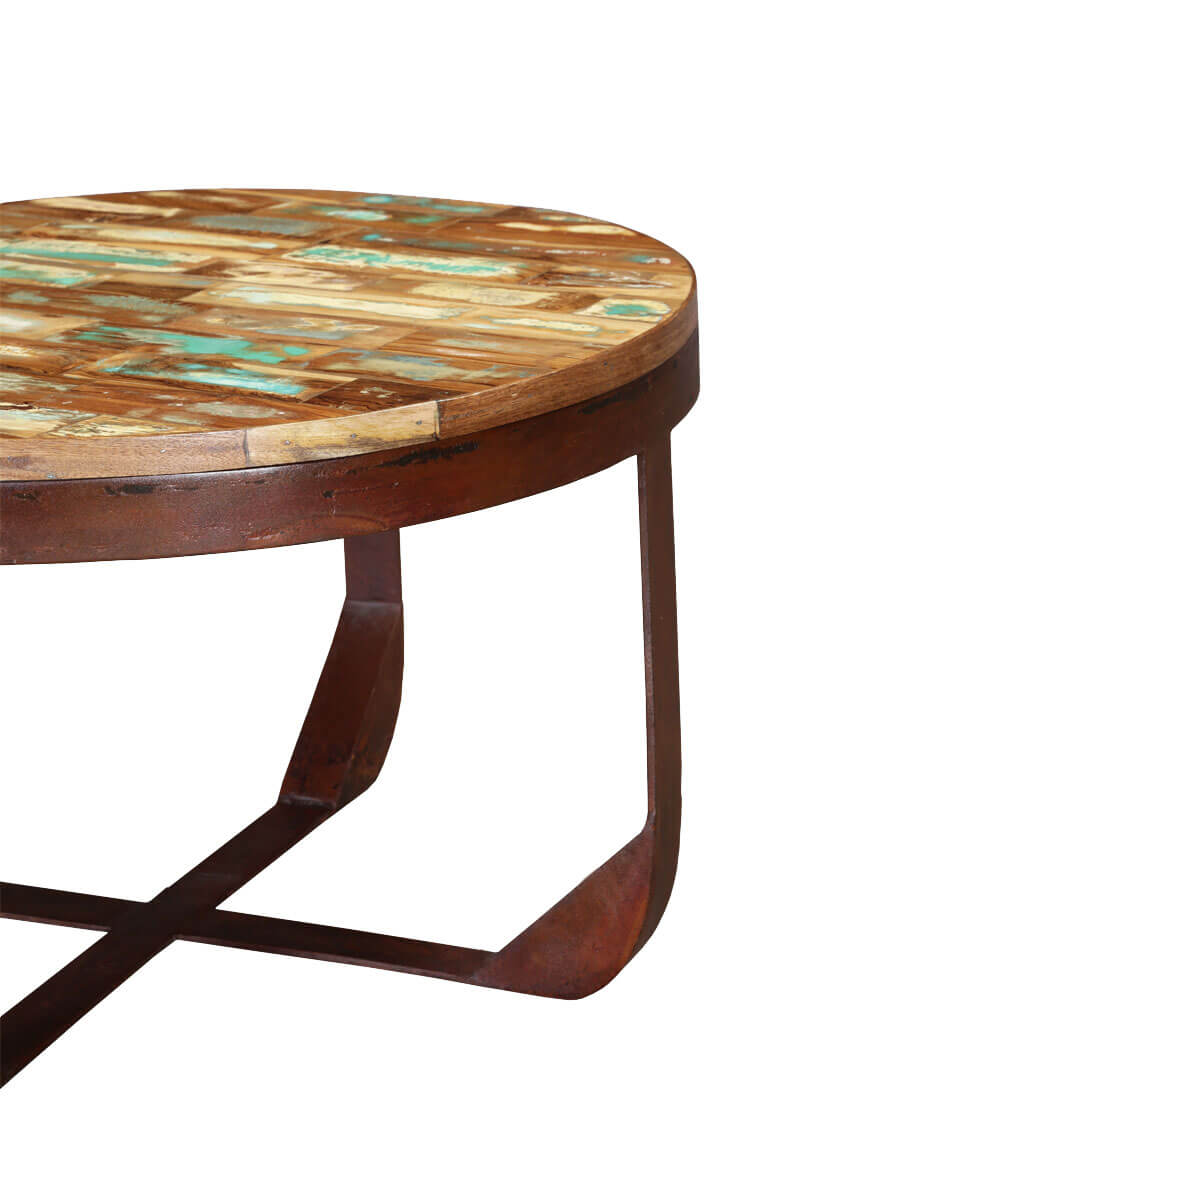 Industrial 29 round handcrafted reclaimed wood rustic coffee table Round rustic coffee table